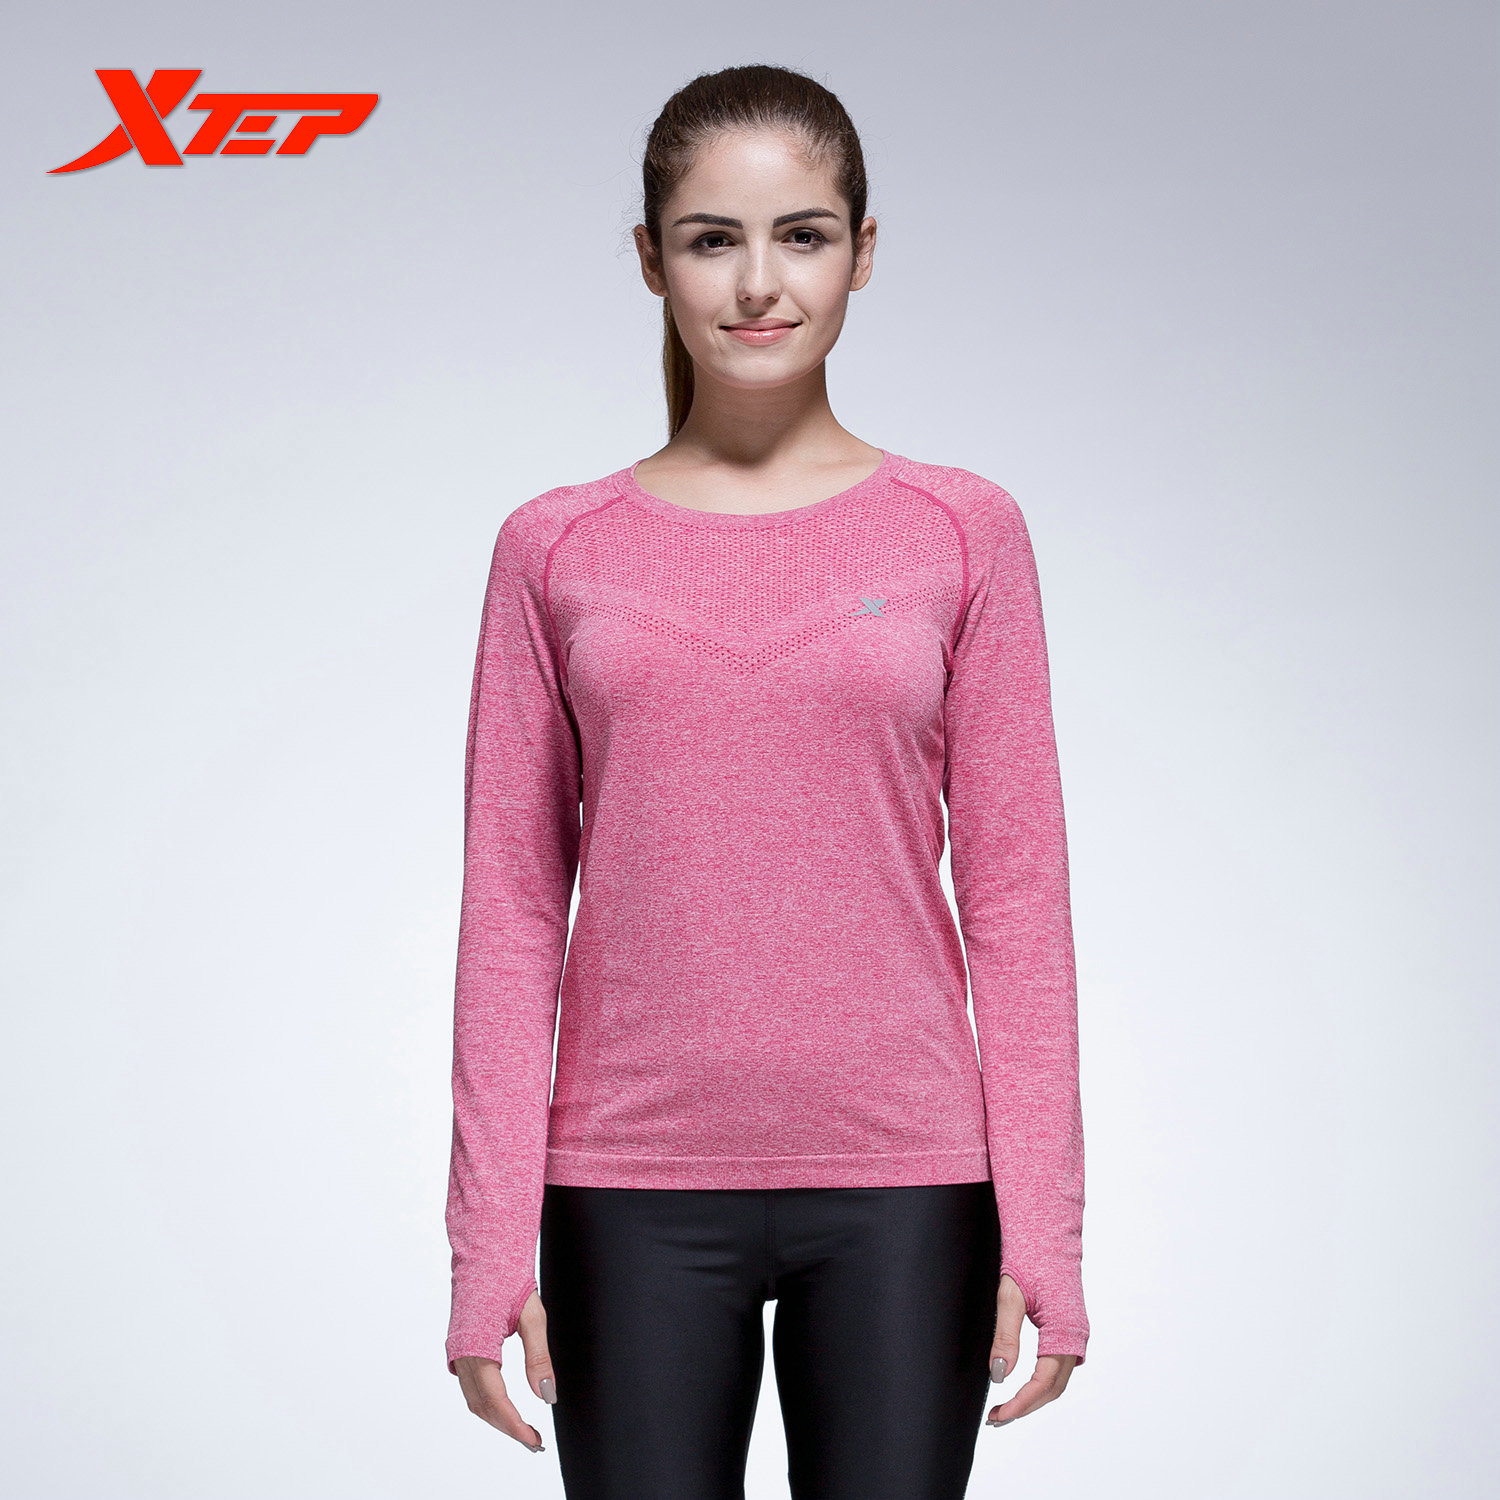 ... XTEP Women's Long Sleeve Running Shirts Tops Compression Tights Yoga Shirts Sportswear Fitness Workout Quick Dry ...